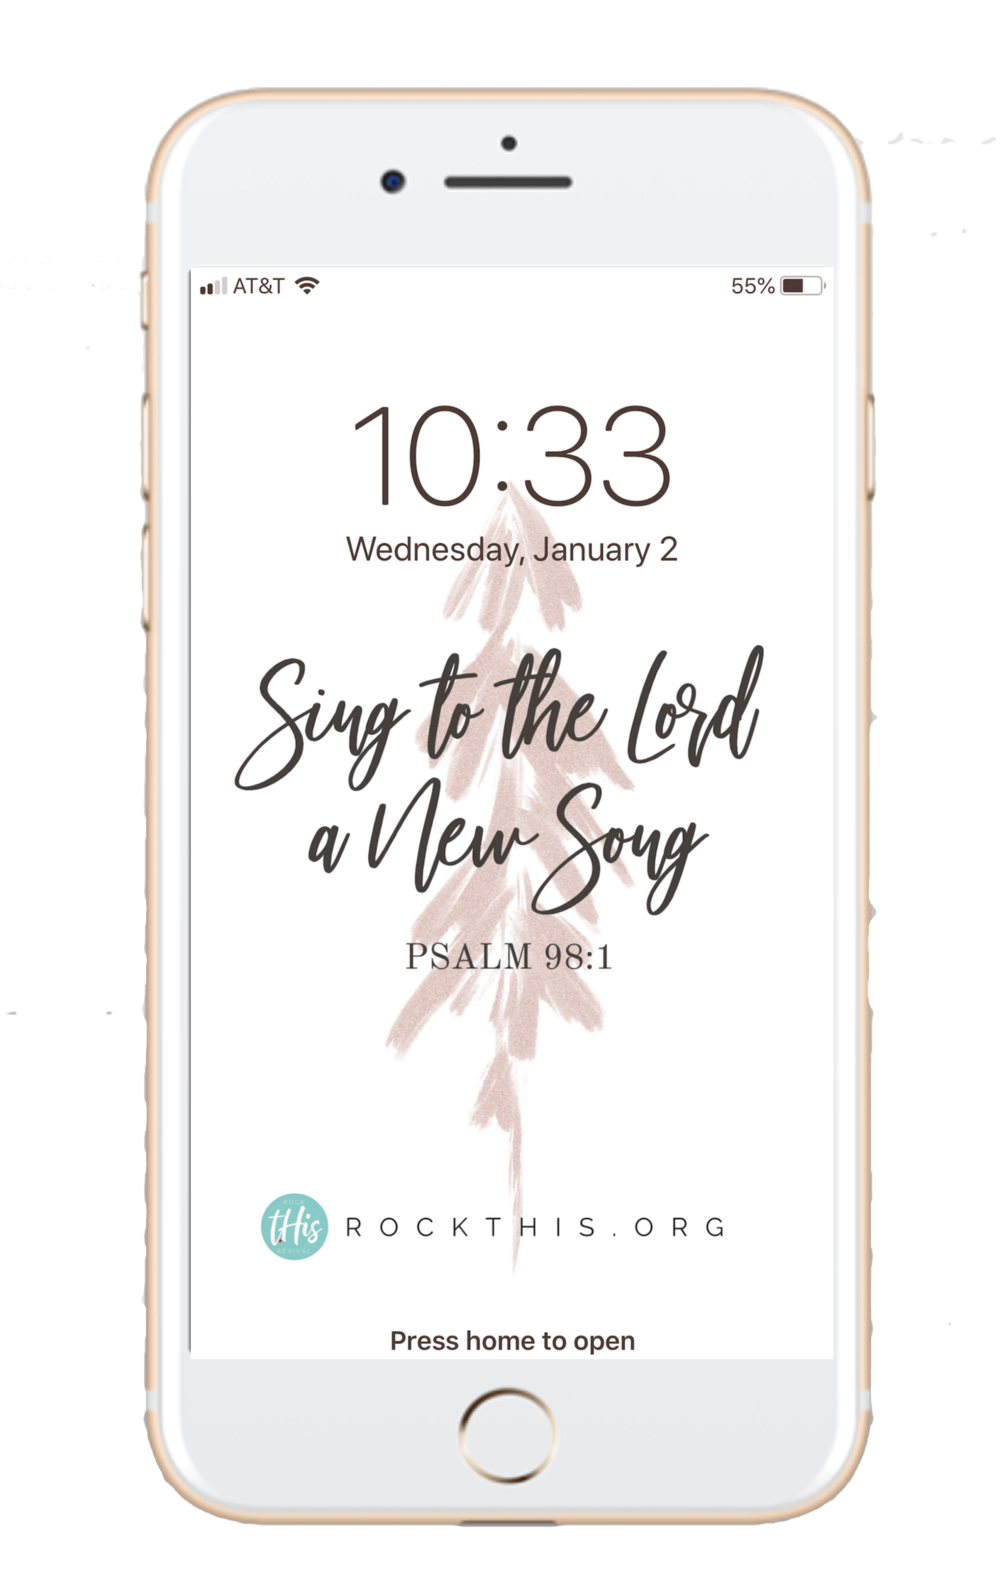 Lock Screens | Free Lock Screens | Sing the Lord a new song #rockthisrevival #scripture #lockscreen